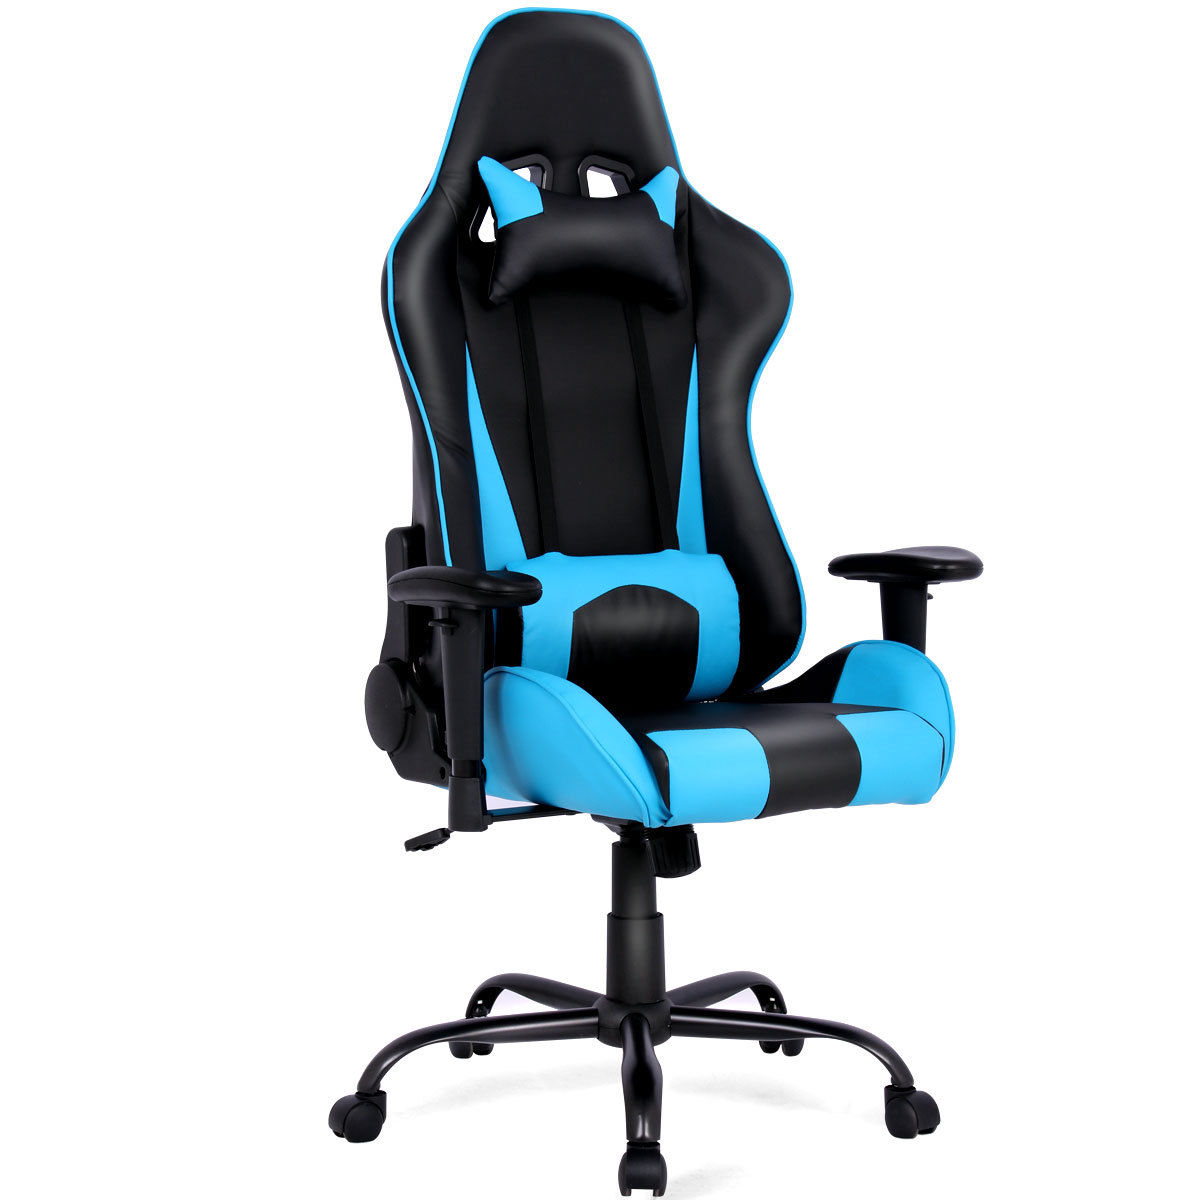 Costway Gaming Chair Racing High Back Office Chair w/ Lumbar Support and Headrest Blue